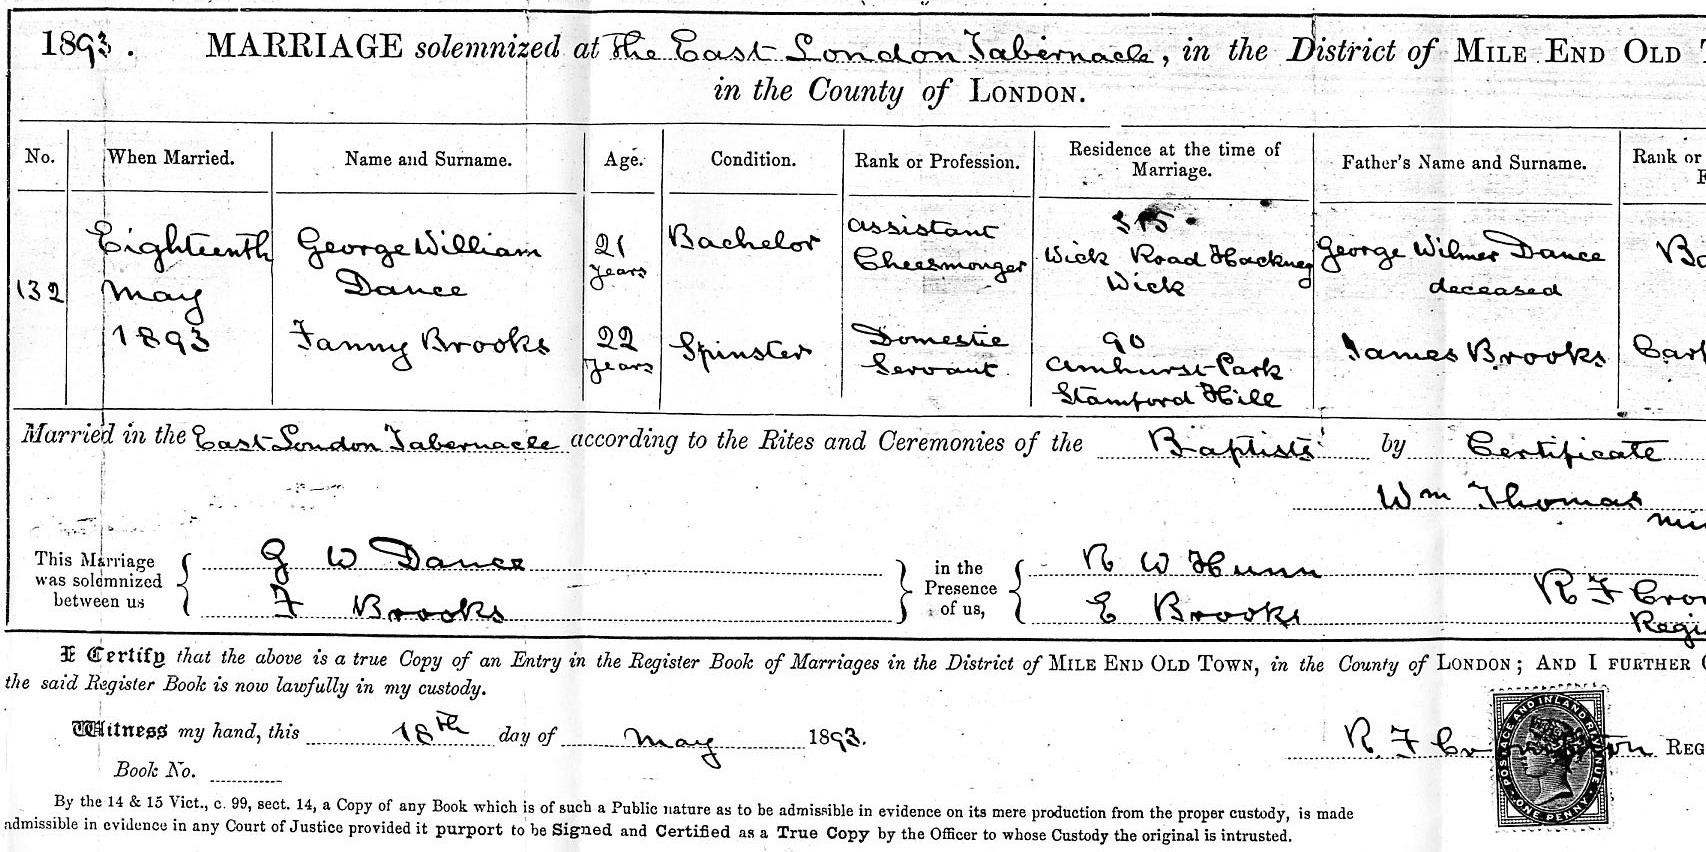 George William Dance and Fanny Brooks wedding certificate